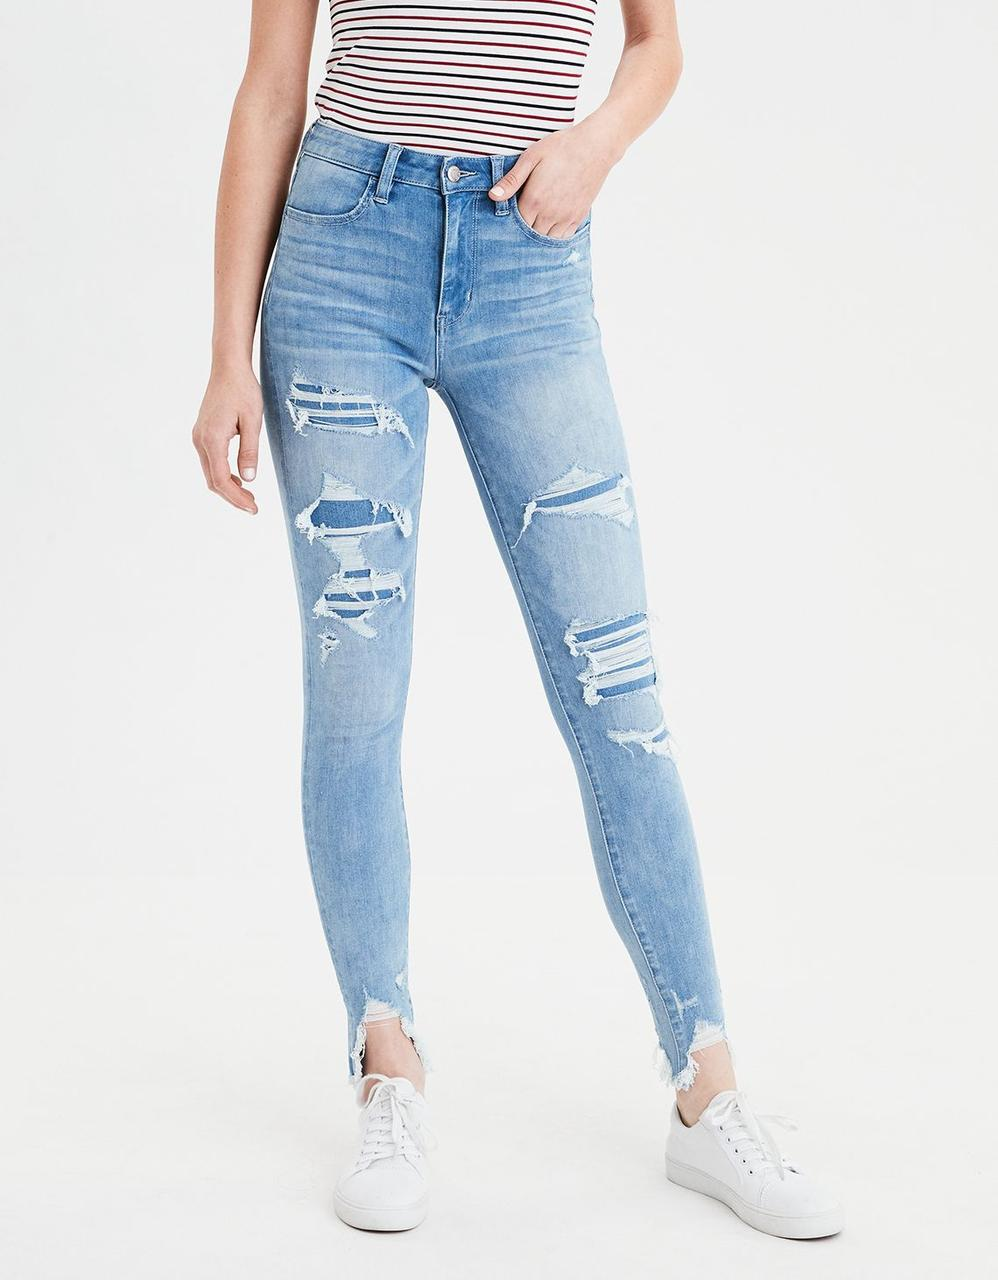 aa54729f American Eagle Jeans, AE 360 NE(X)T LEVEL SUPER HIGH-WAISTED JEGGING ...